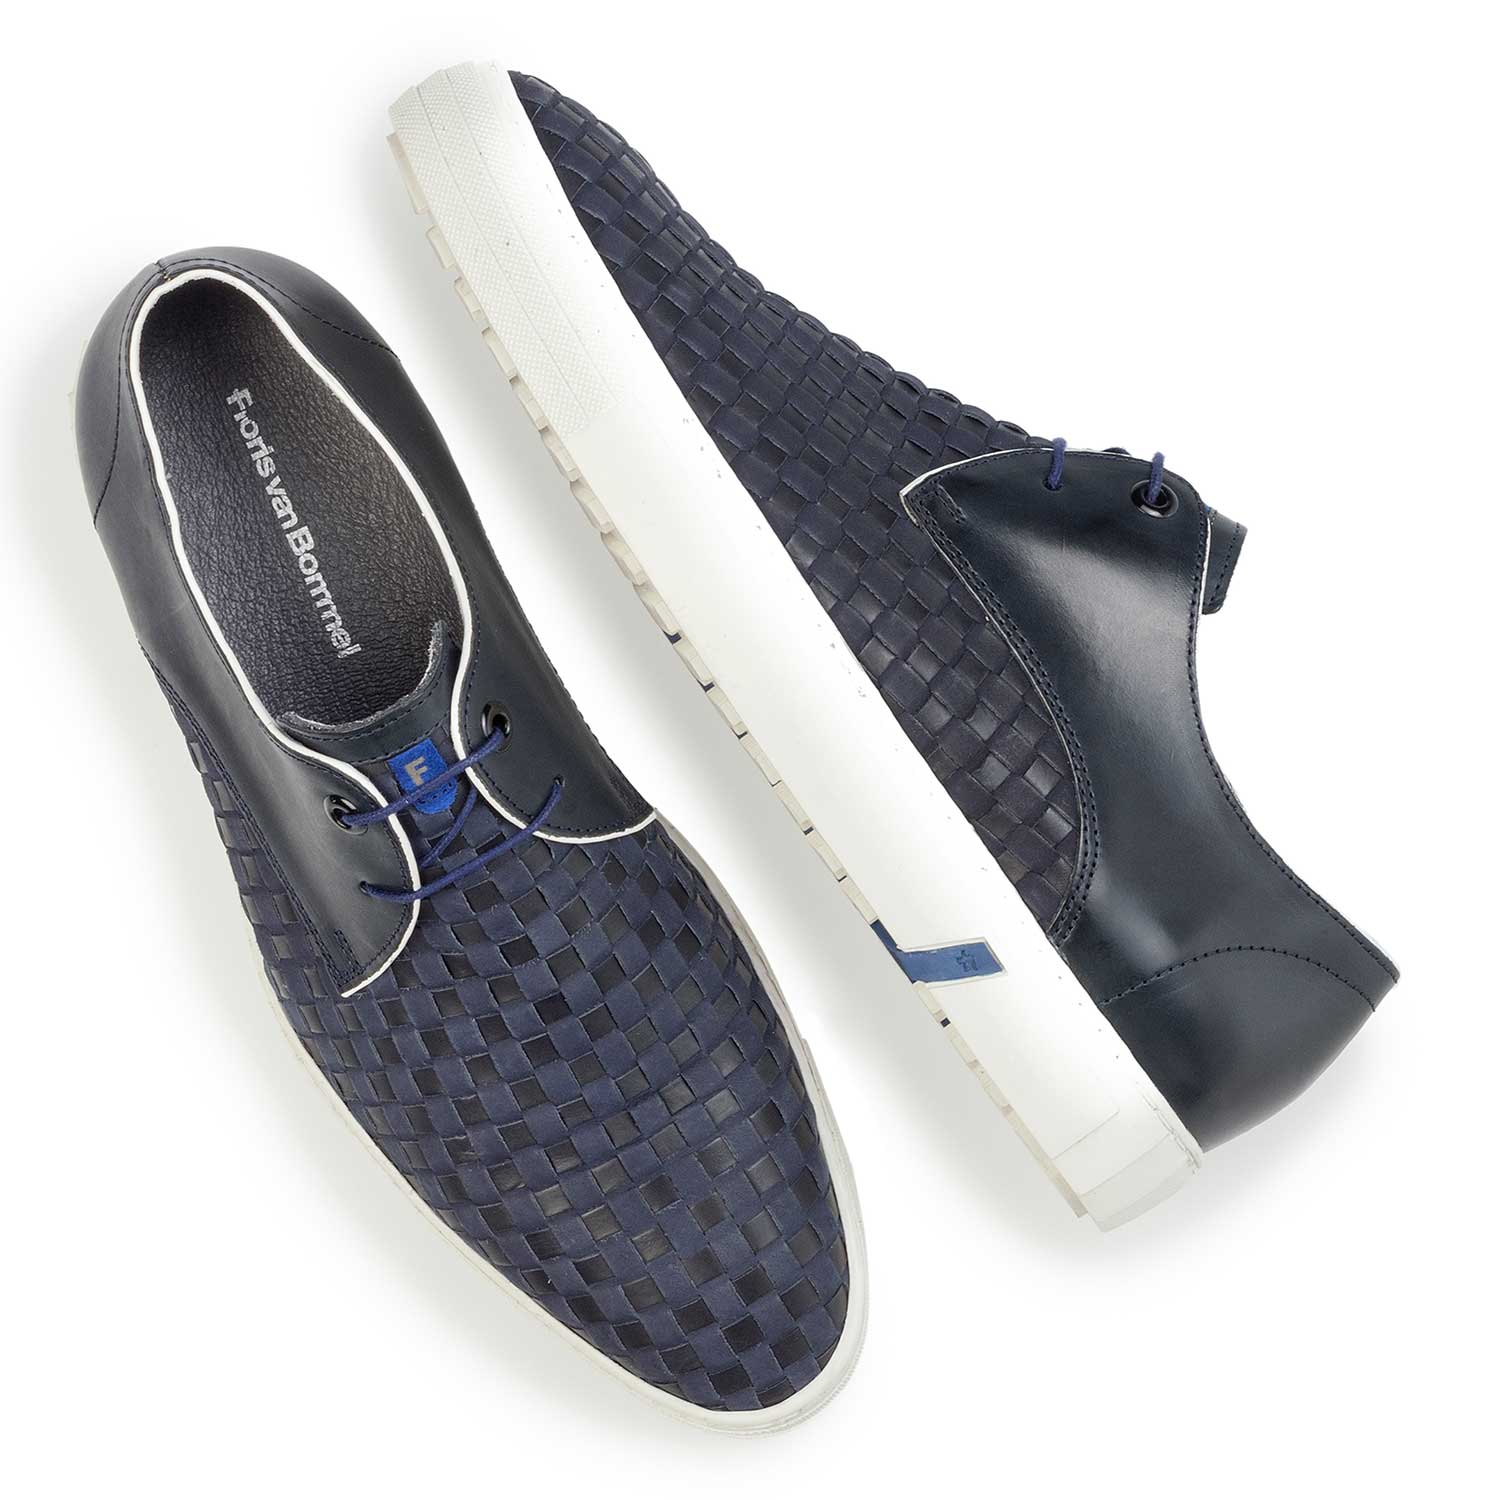 14277/01 - Premium dark blue braided leather lace shoe